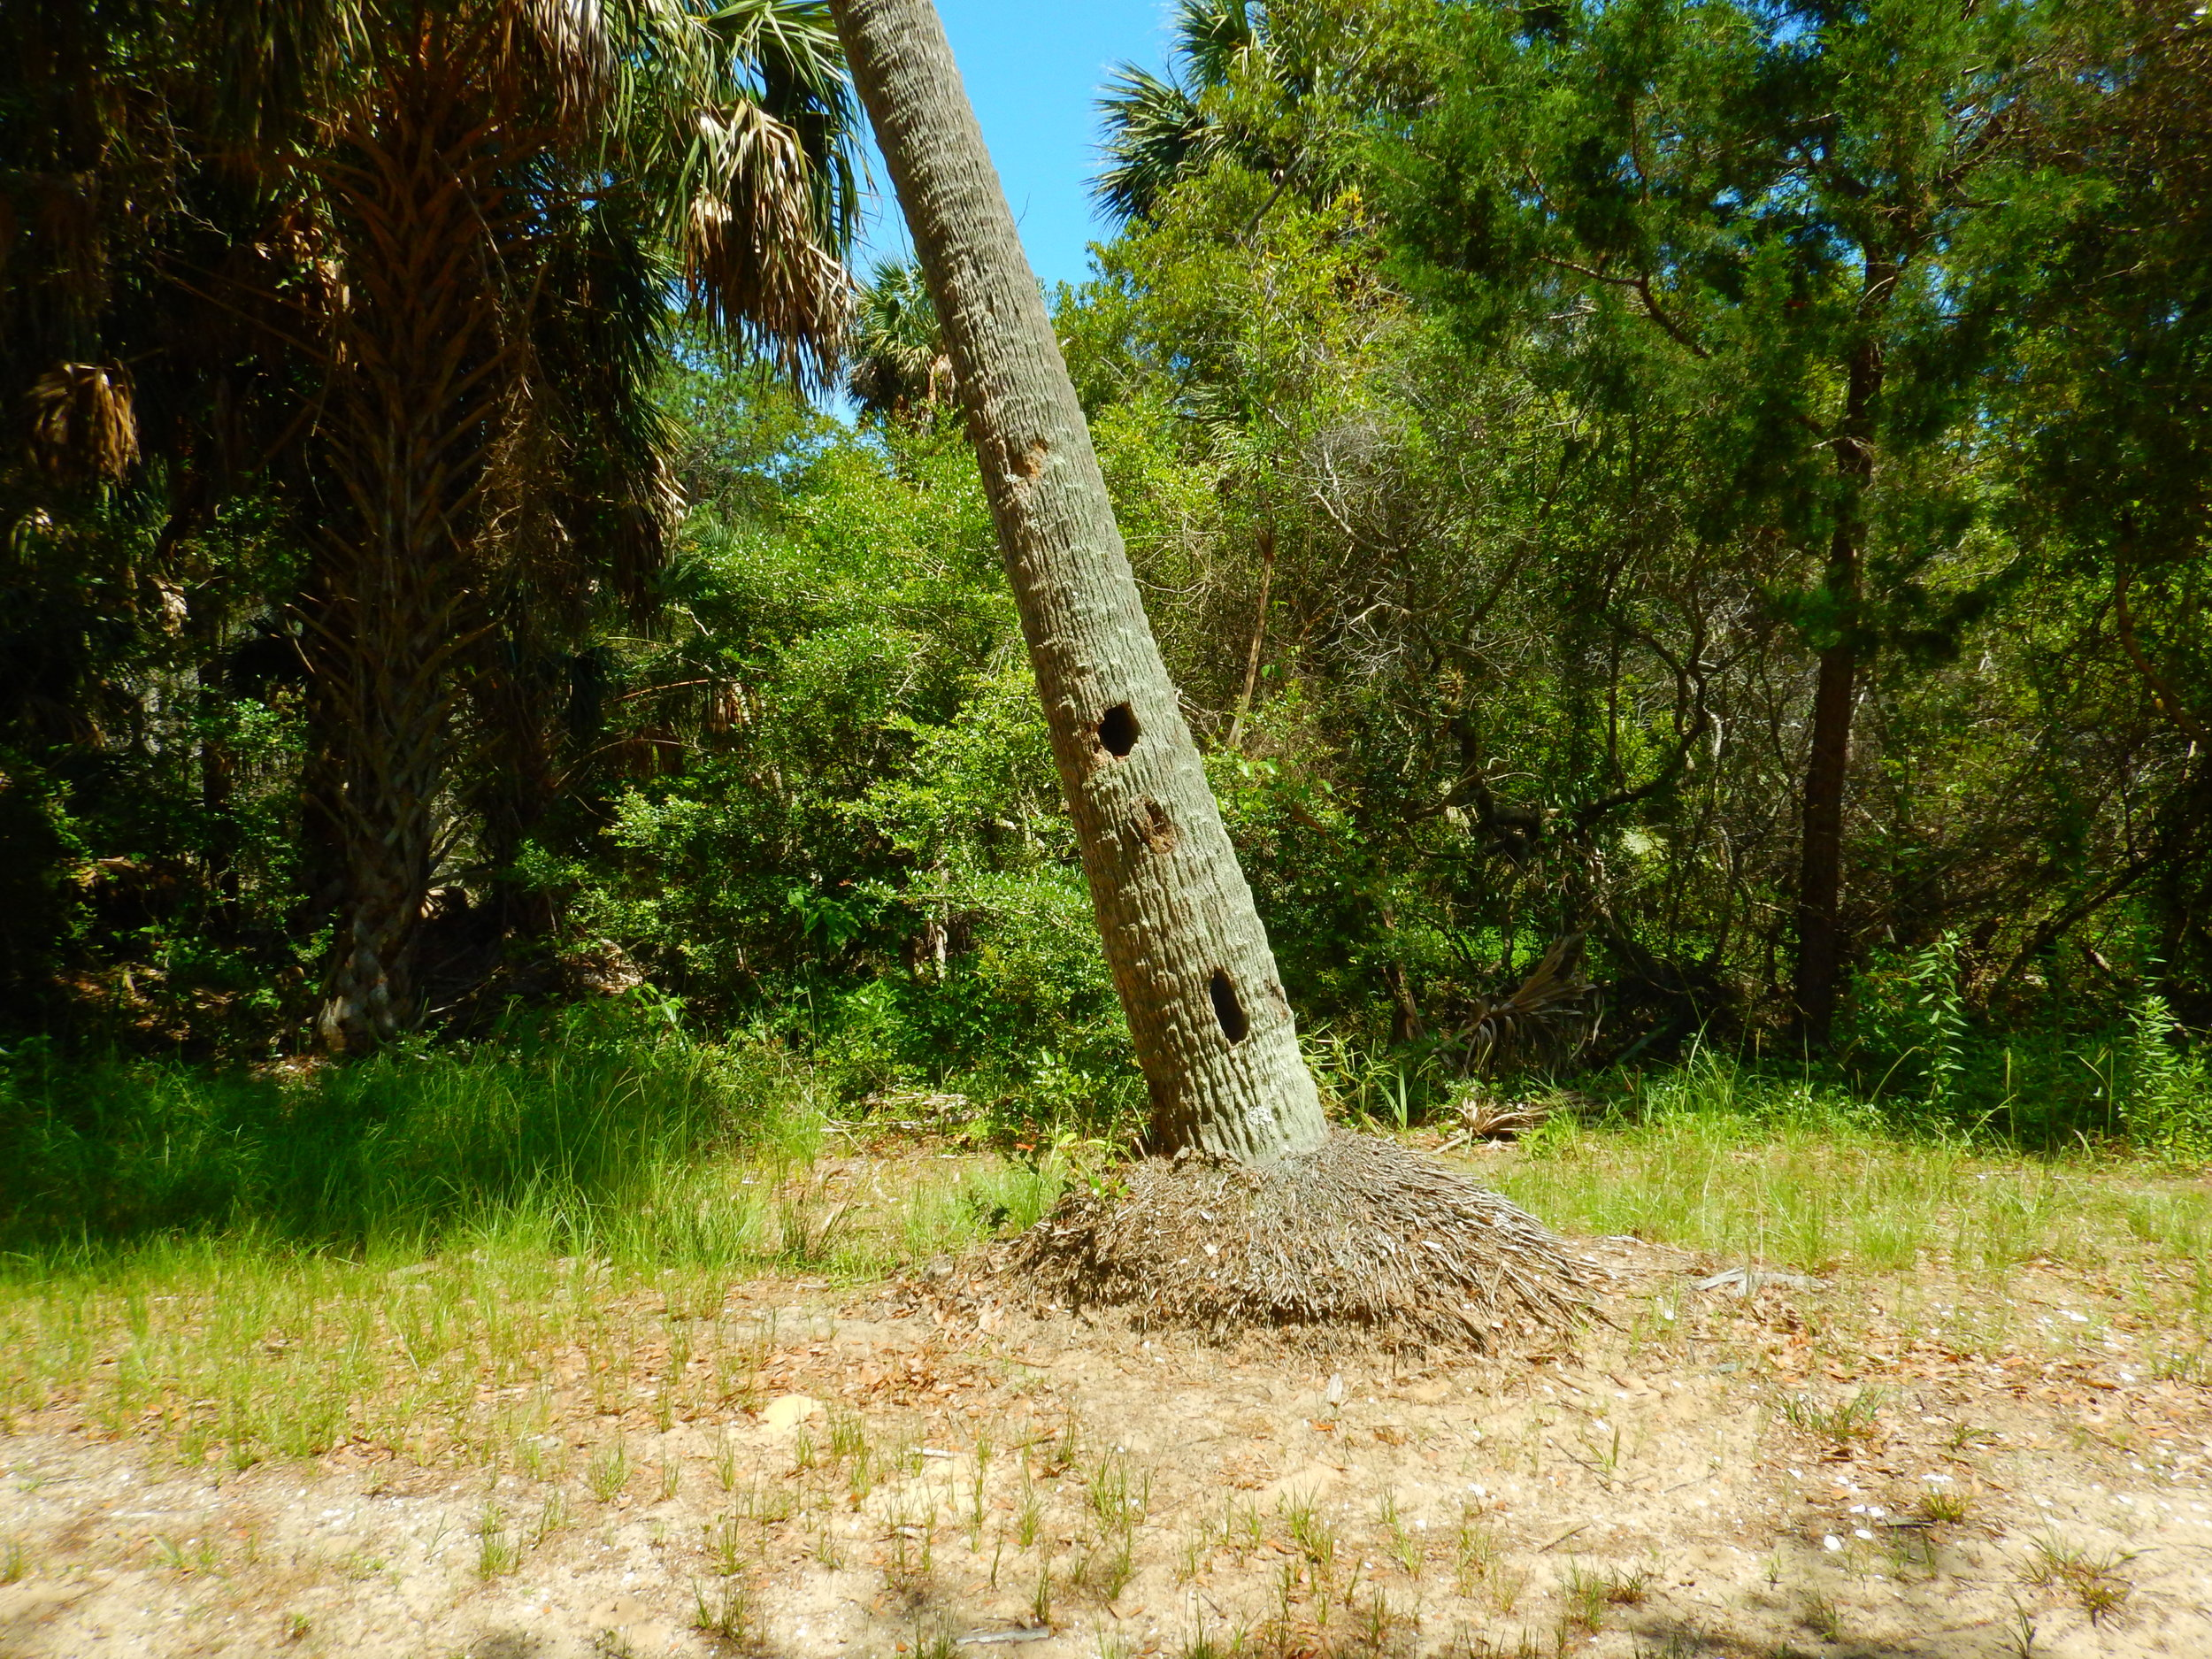 Woodpeckers or other cavity nesters appear to have been at work on this palmetto snag.